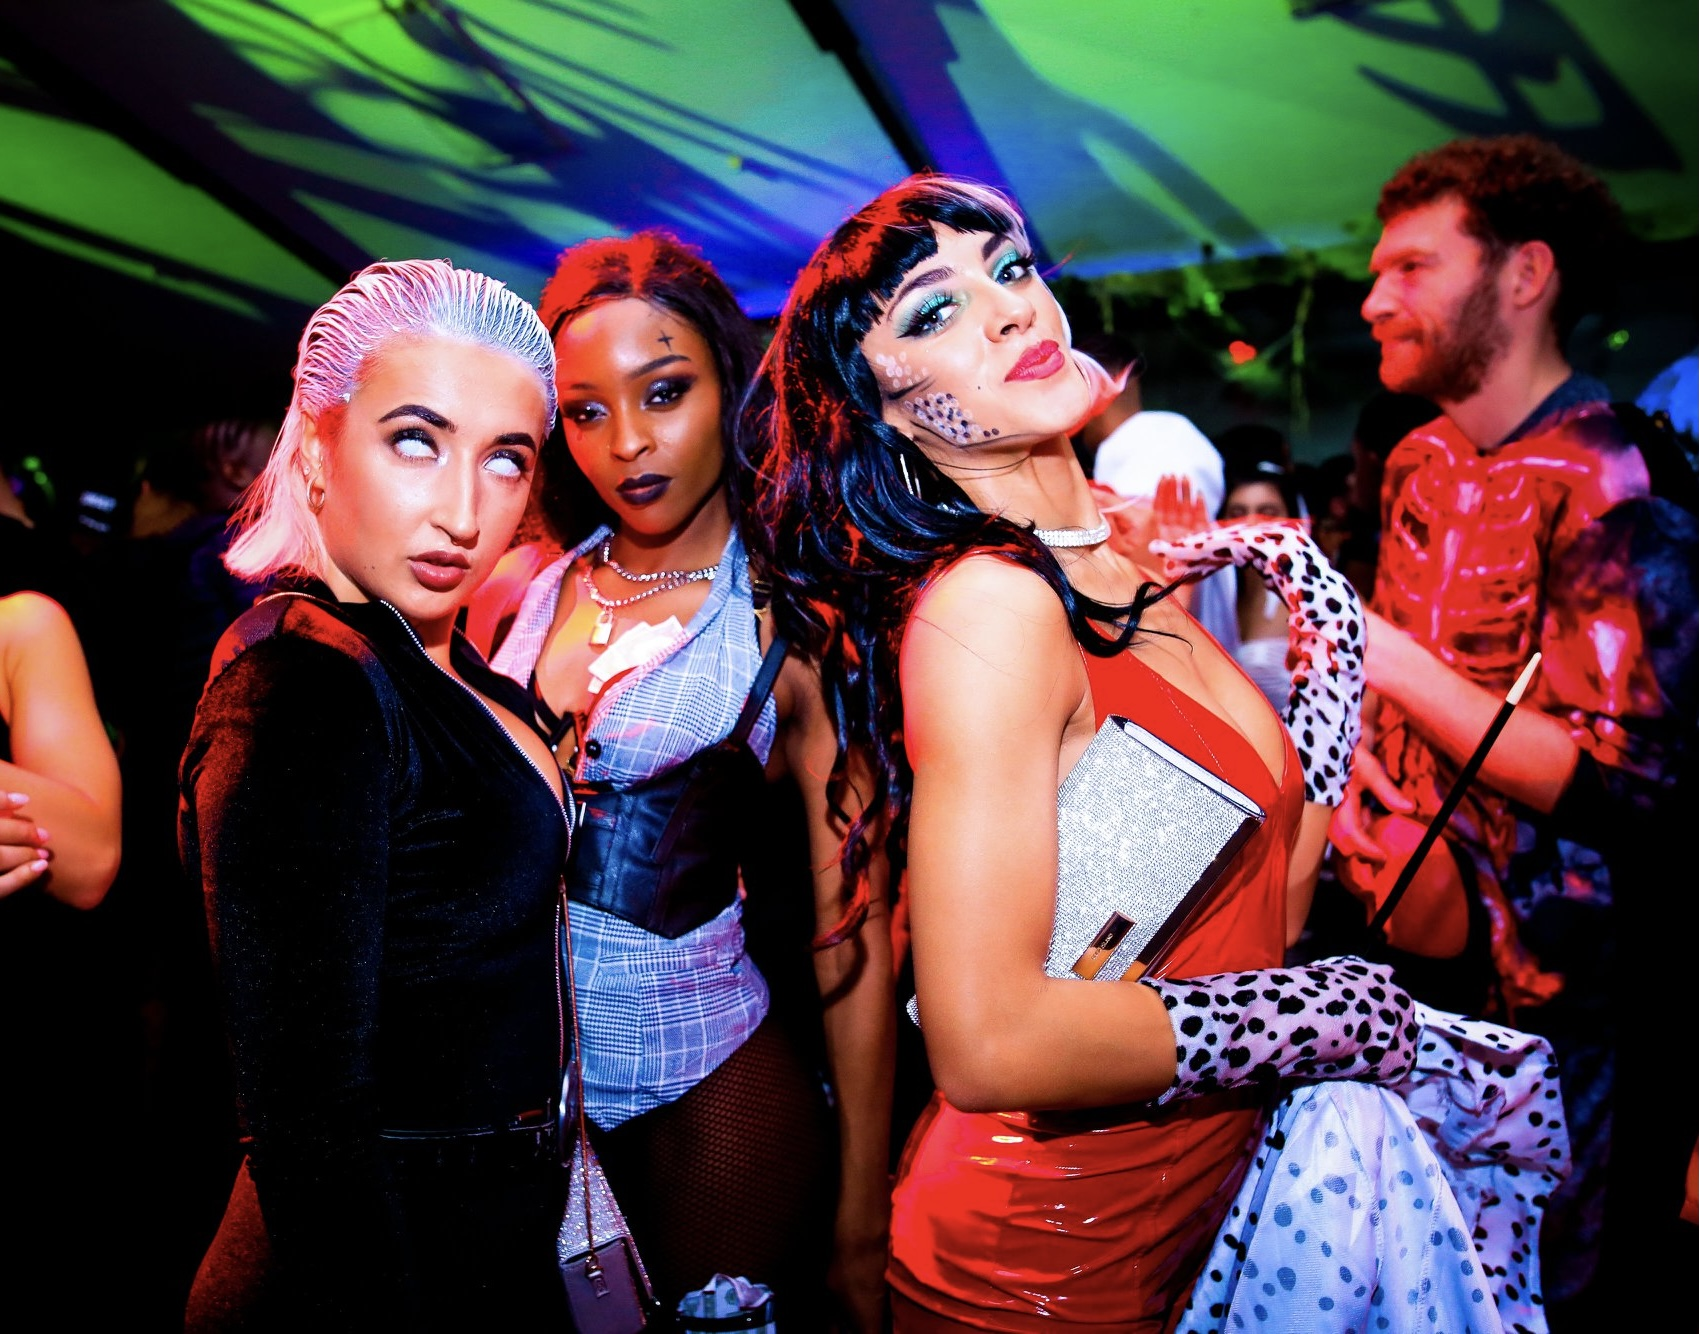 Trick Or Treat - Shoreditch Halloween Bashment Party